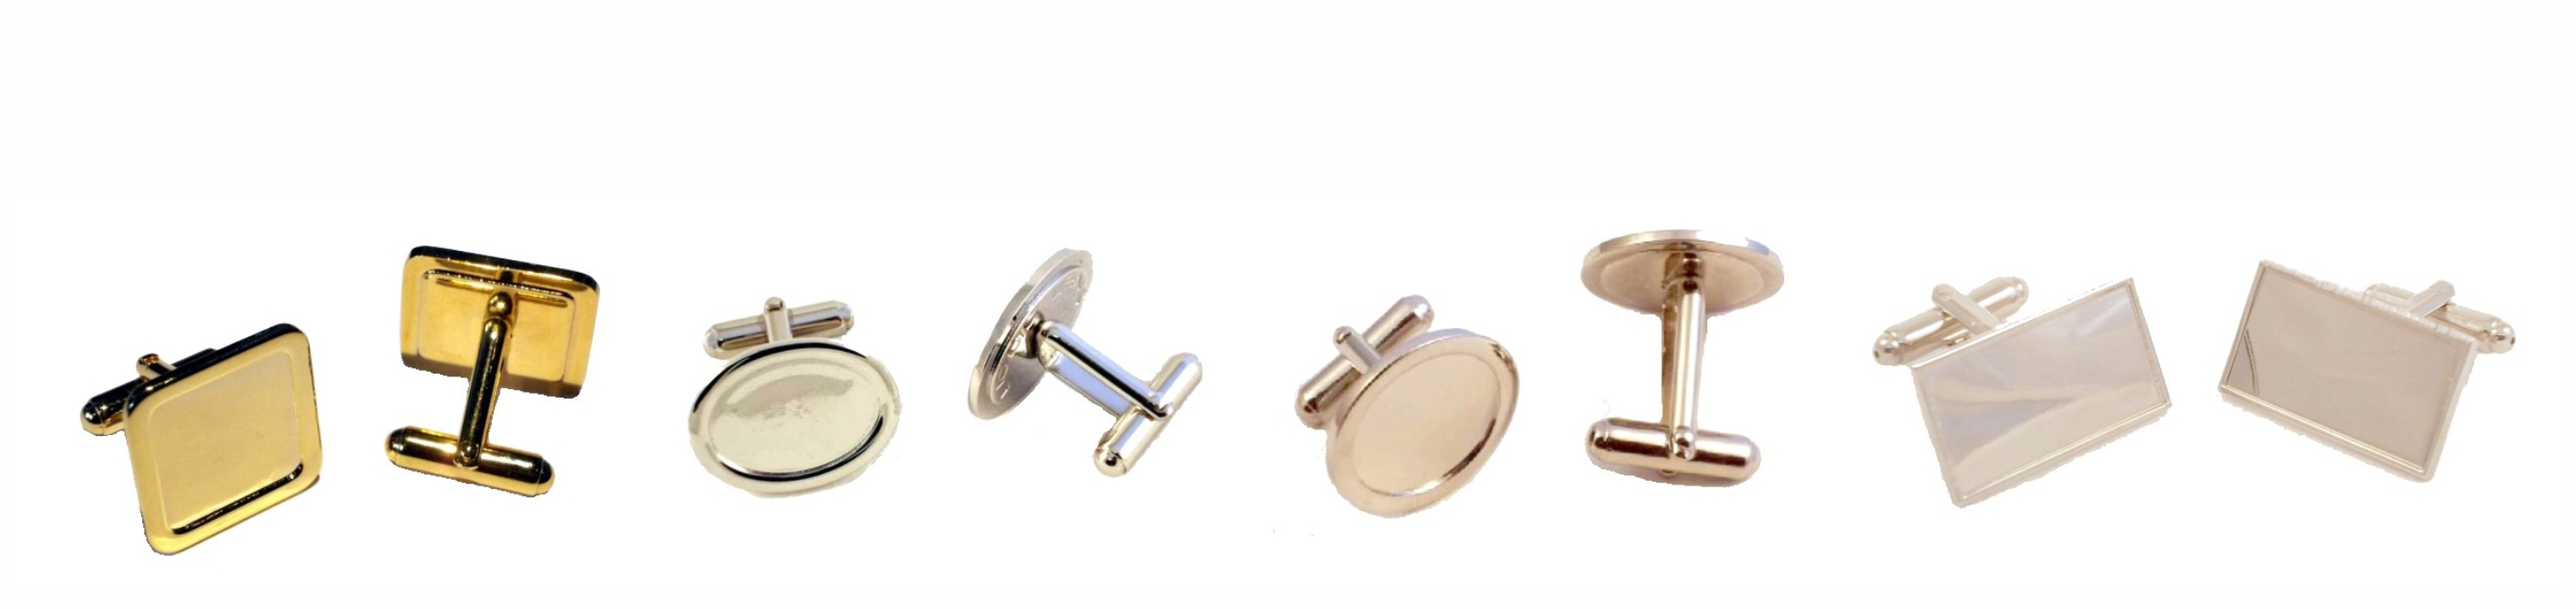 Cufflink Blanks with Clear Domes.